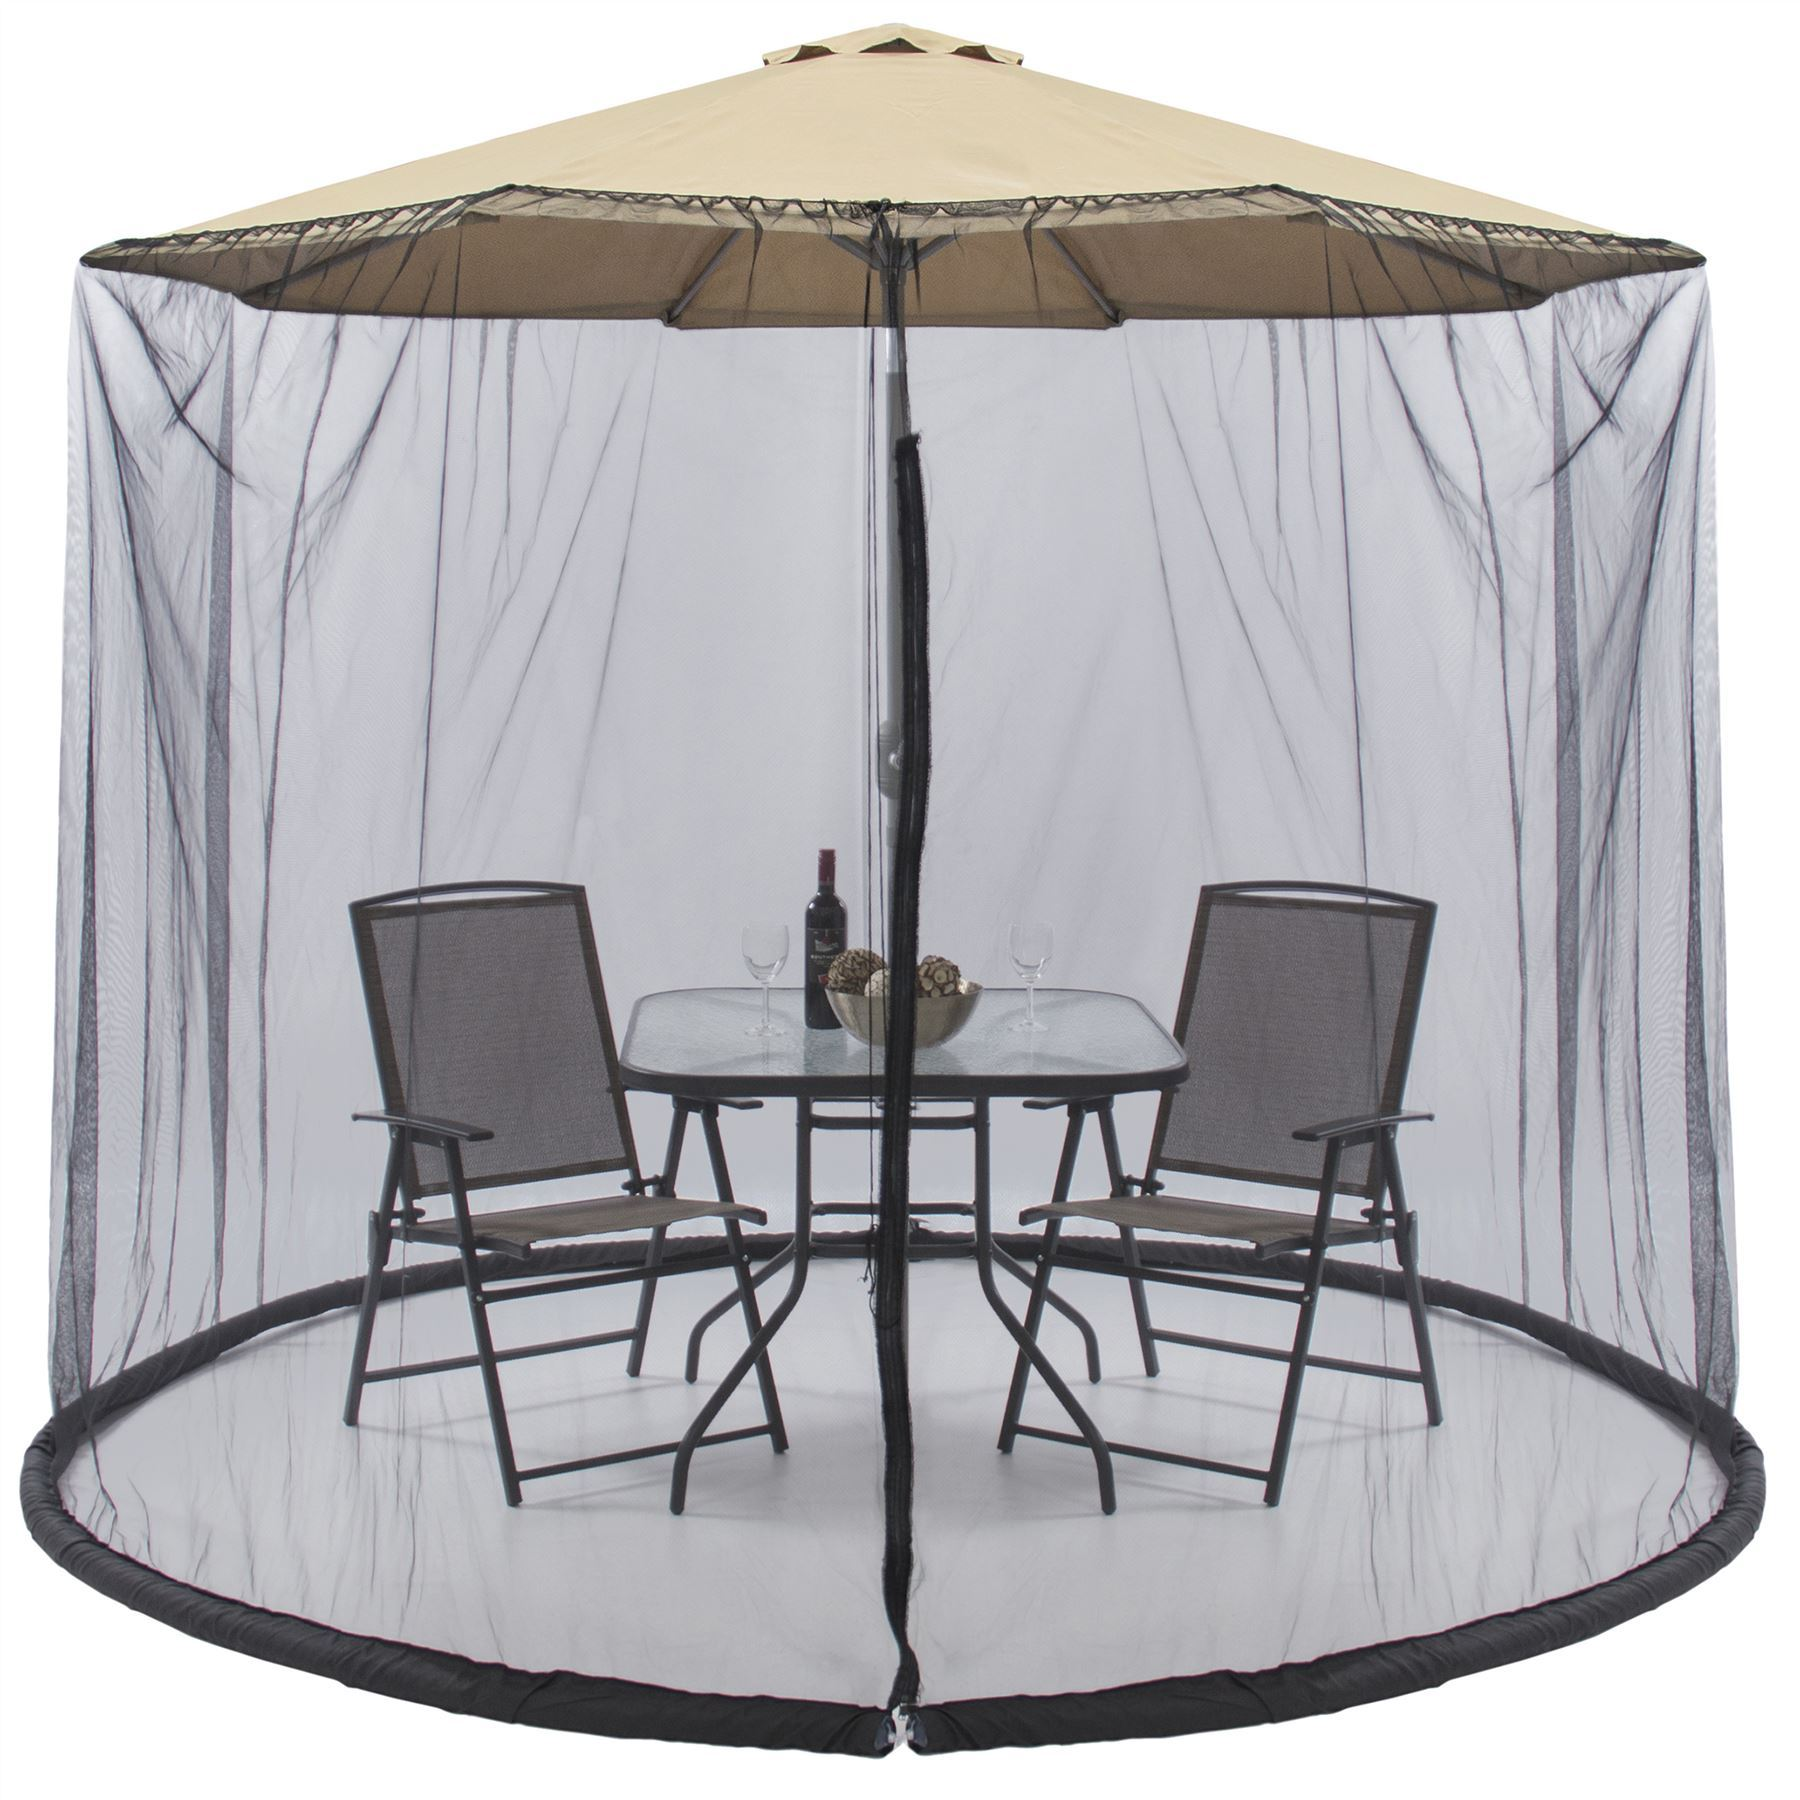 New patio picnic 7 5 ft umbrella table screen enclosure for Patio table umbrella 6 foot